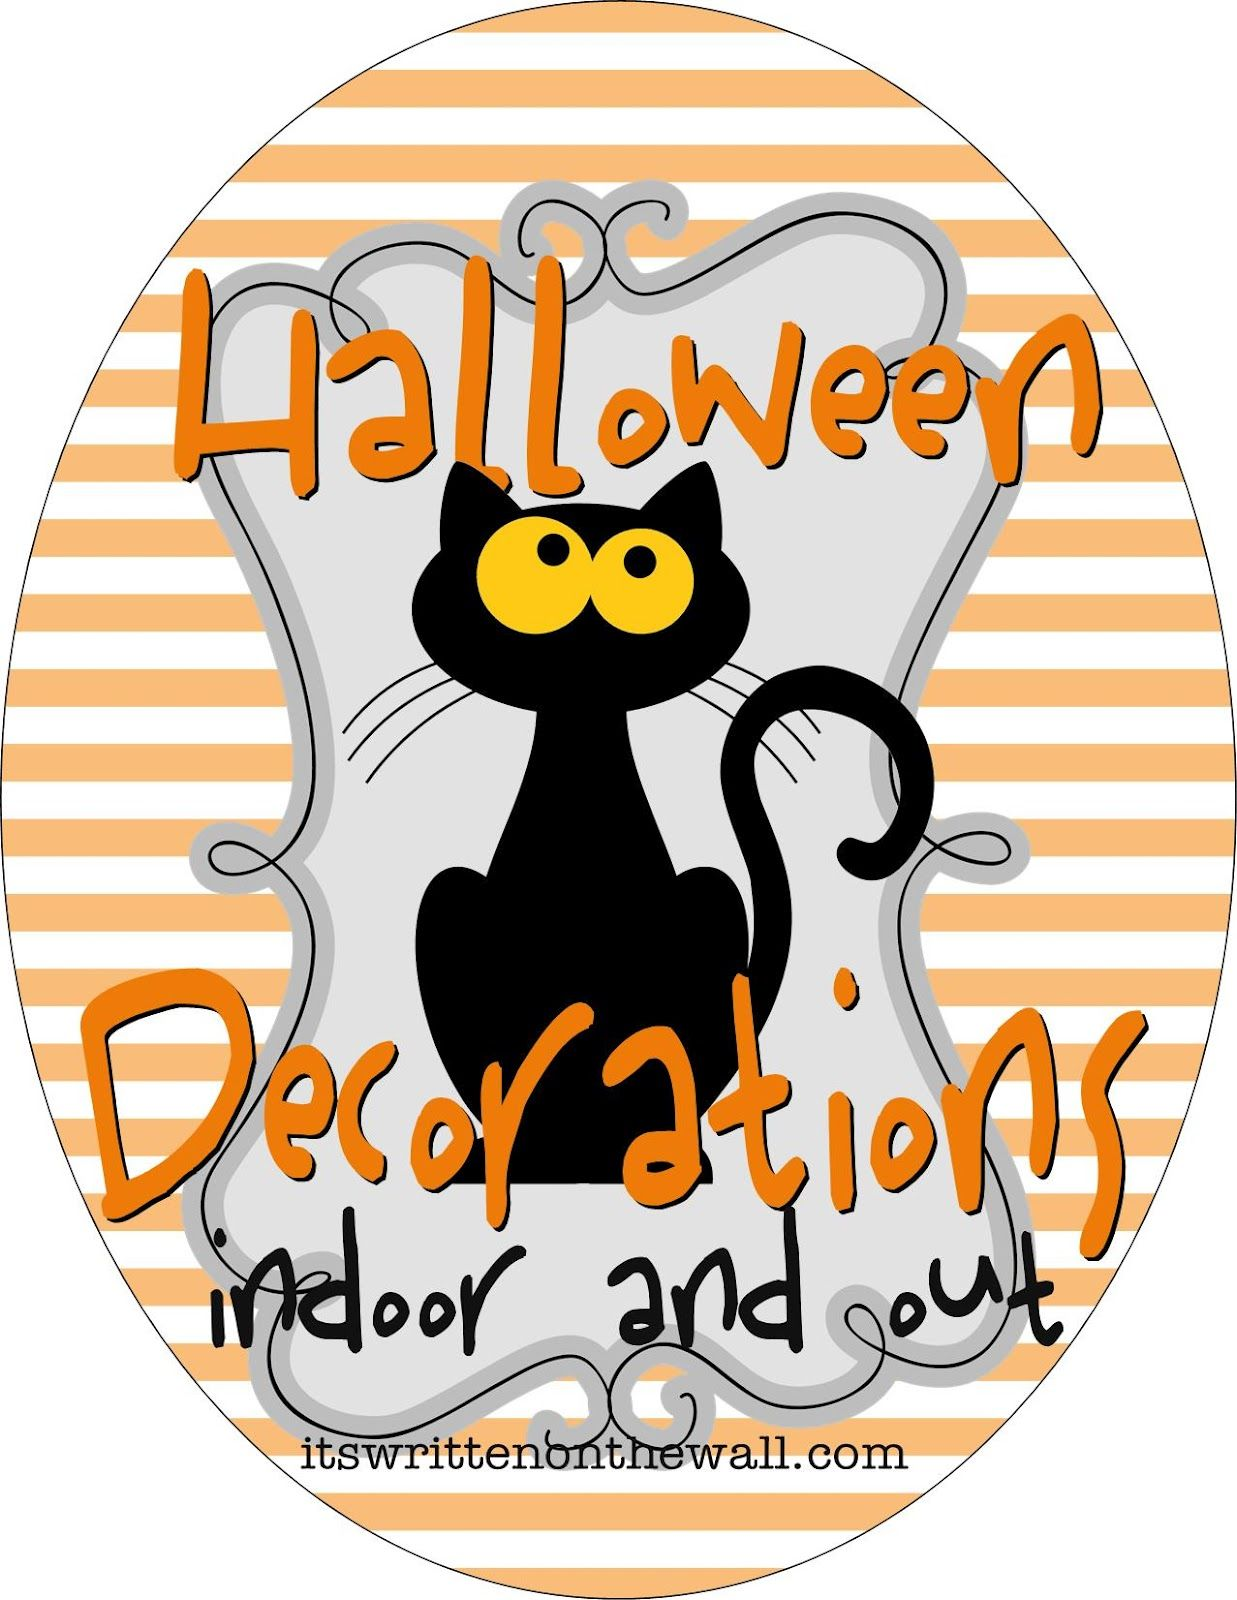 It's Written on the Wall:  Halloween decorations for inside and outside. Ghosts, pumpkins wreaths and much more